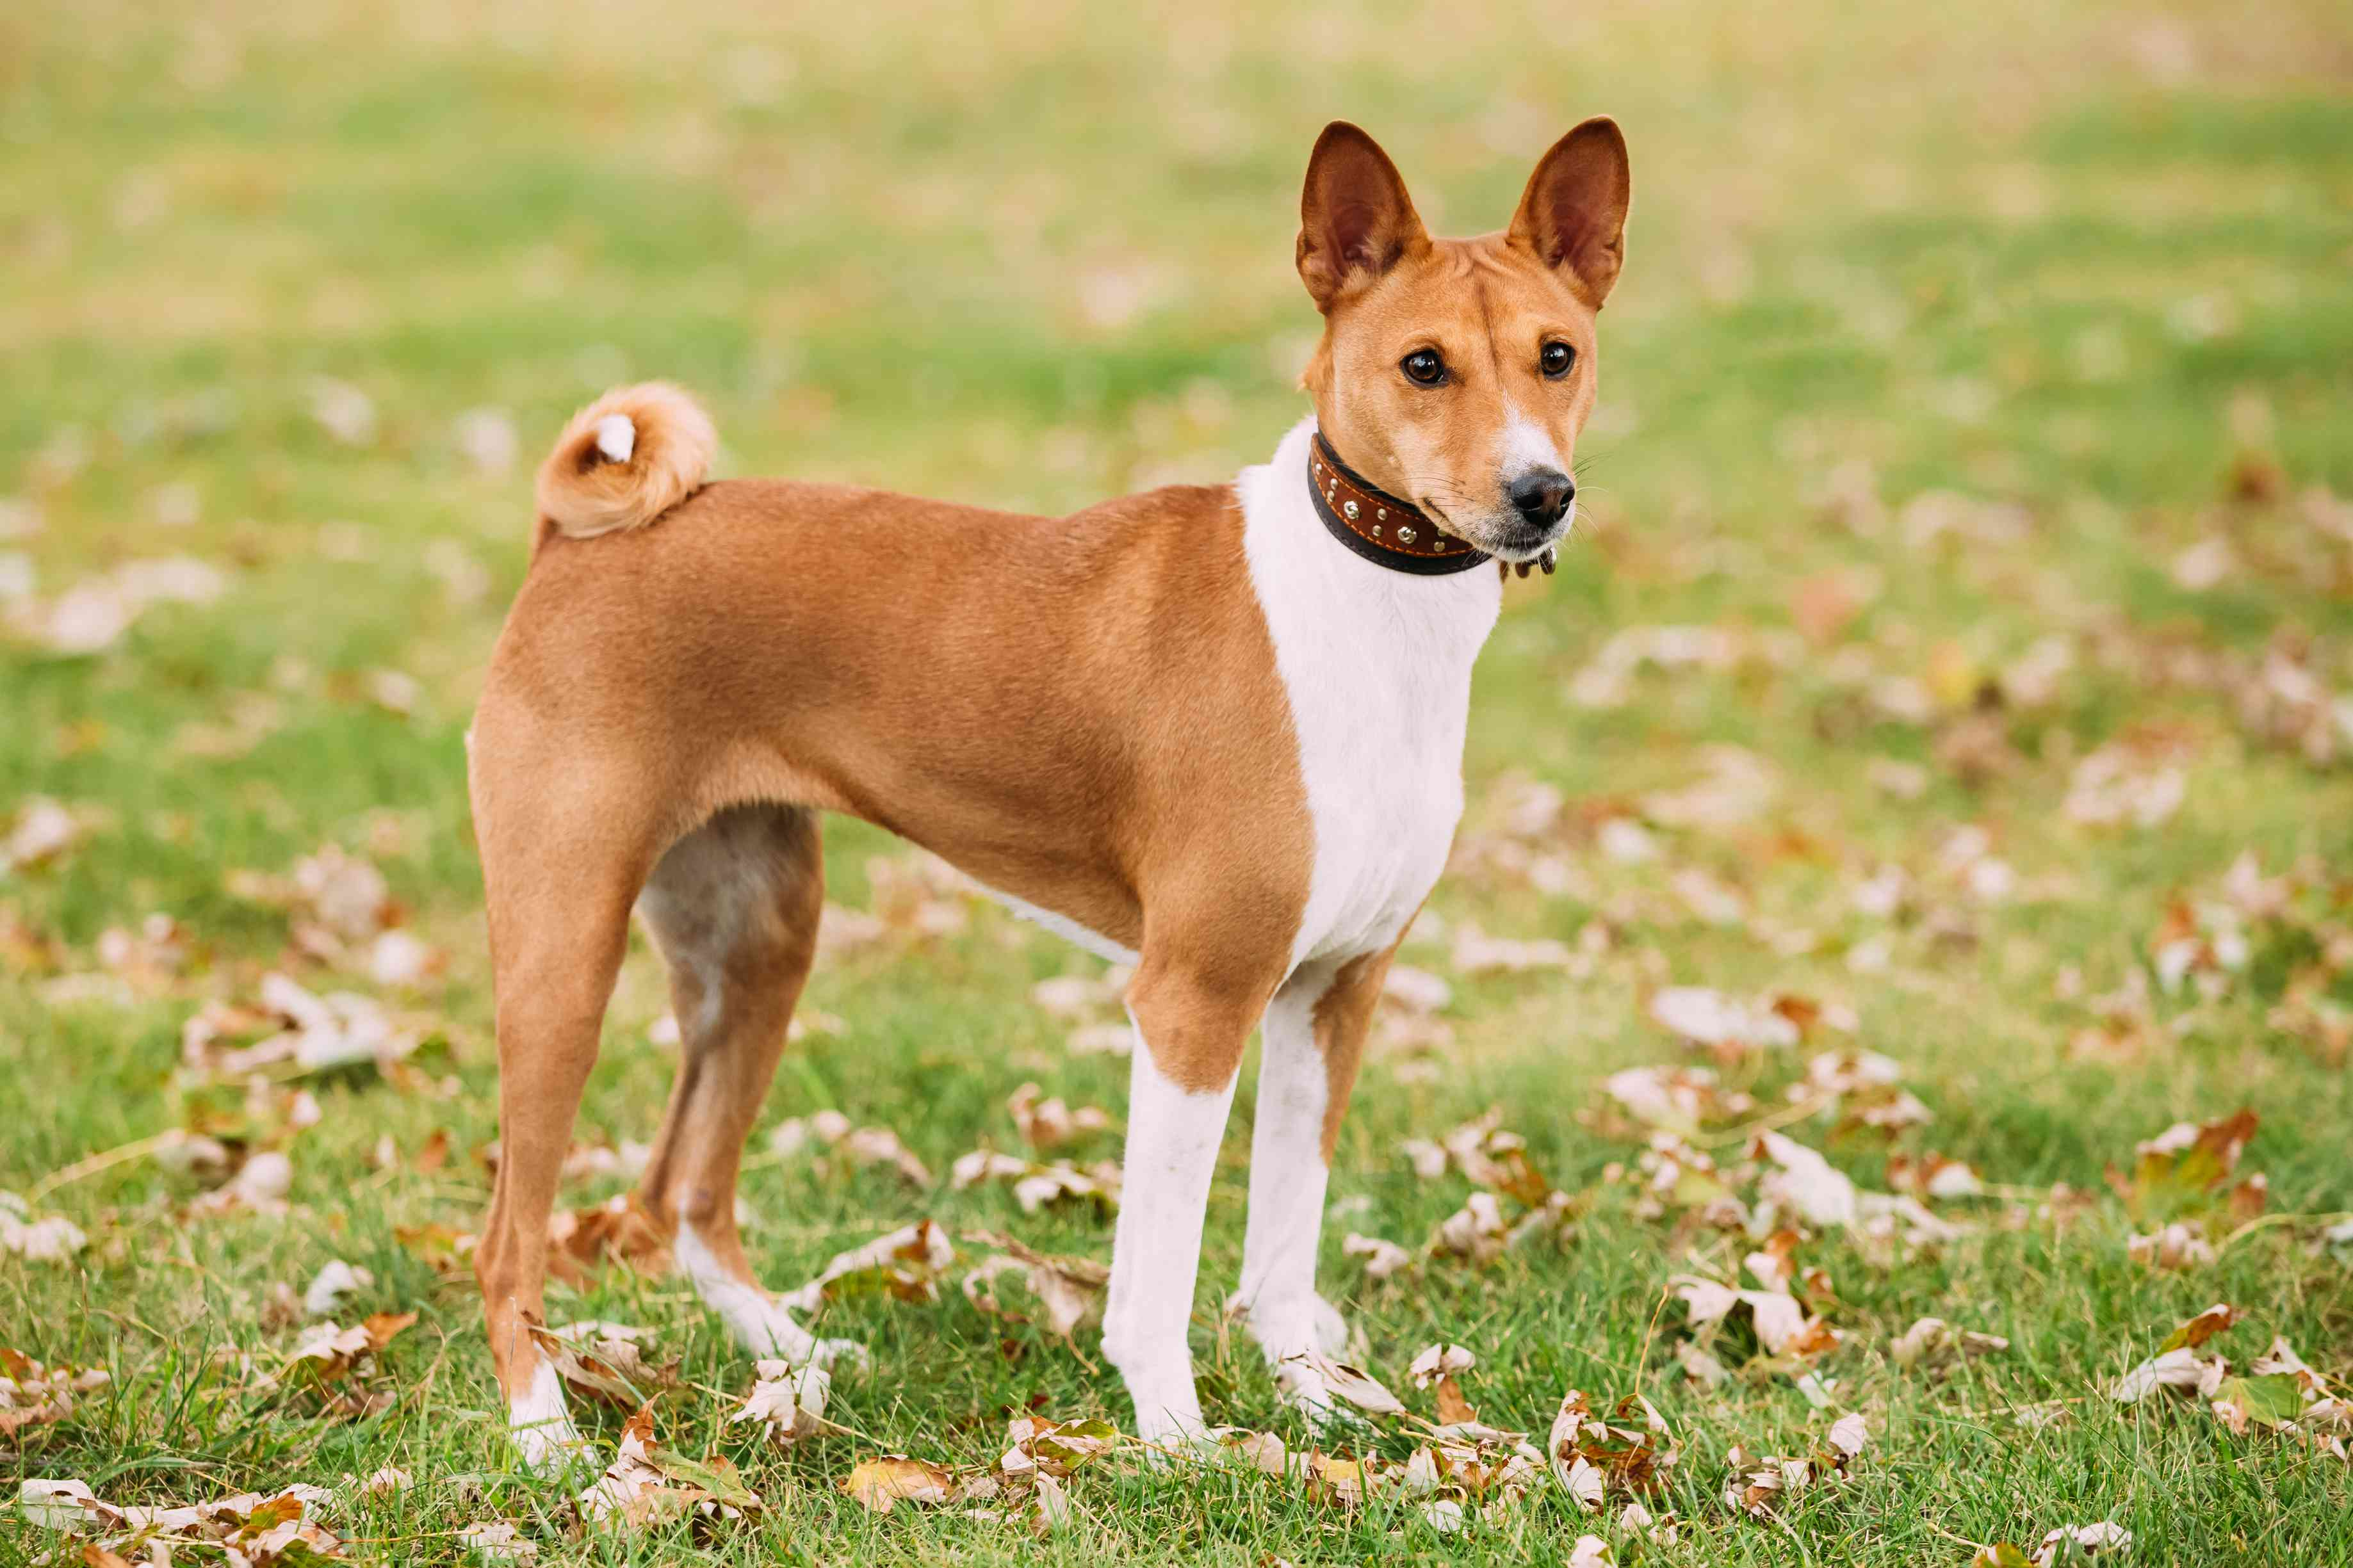 Basenji standing in grass with dried leaves